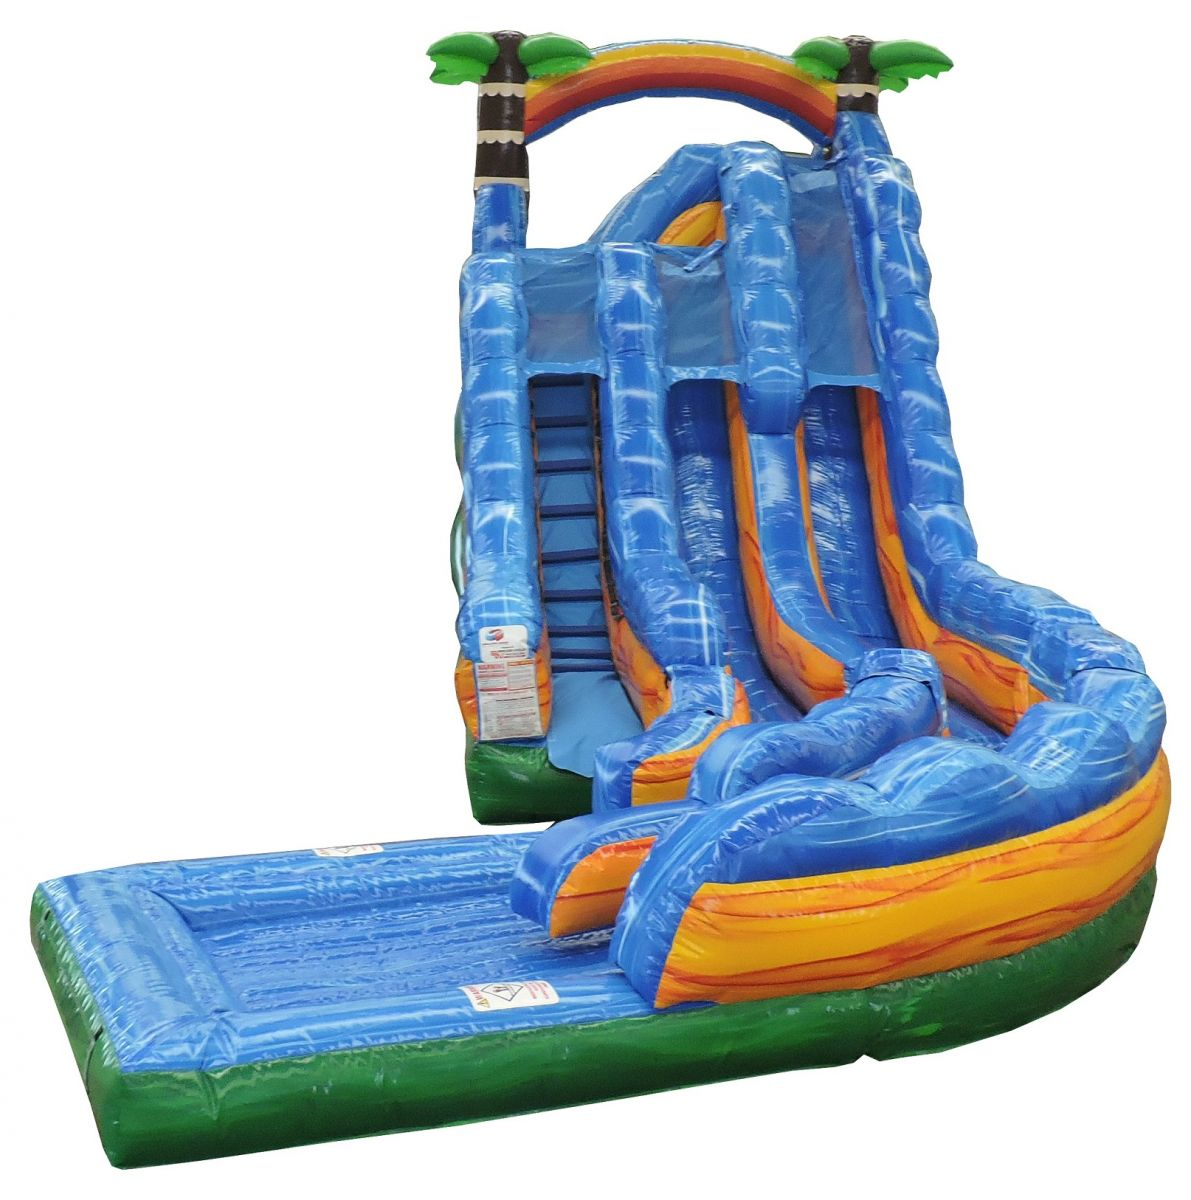 Tropical Thunder Water Slide Rental Mandeville Covington Slidell Hammond